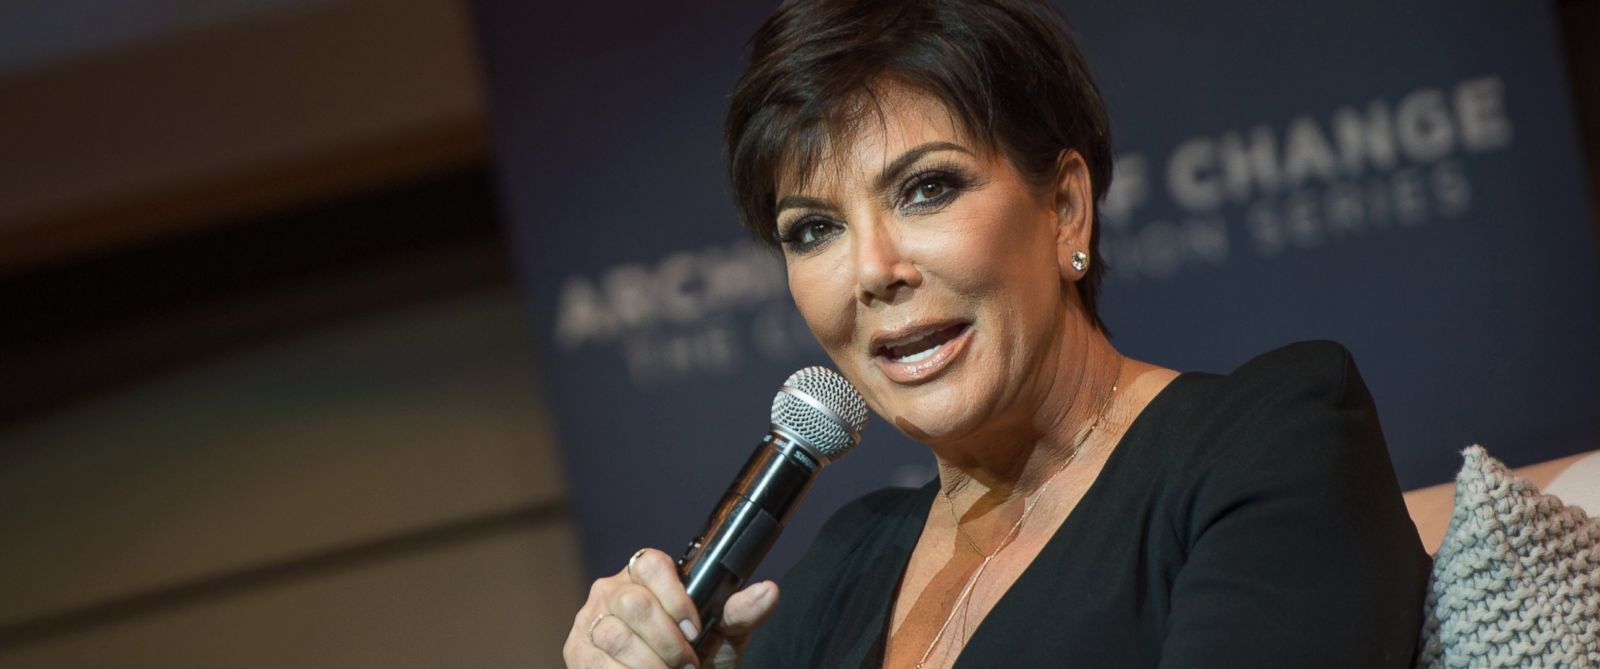 PHOTO: Kris Jenner in Los Angeles, Jan. 14, 2016.